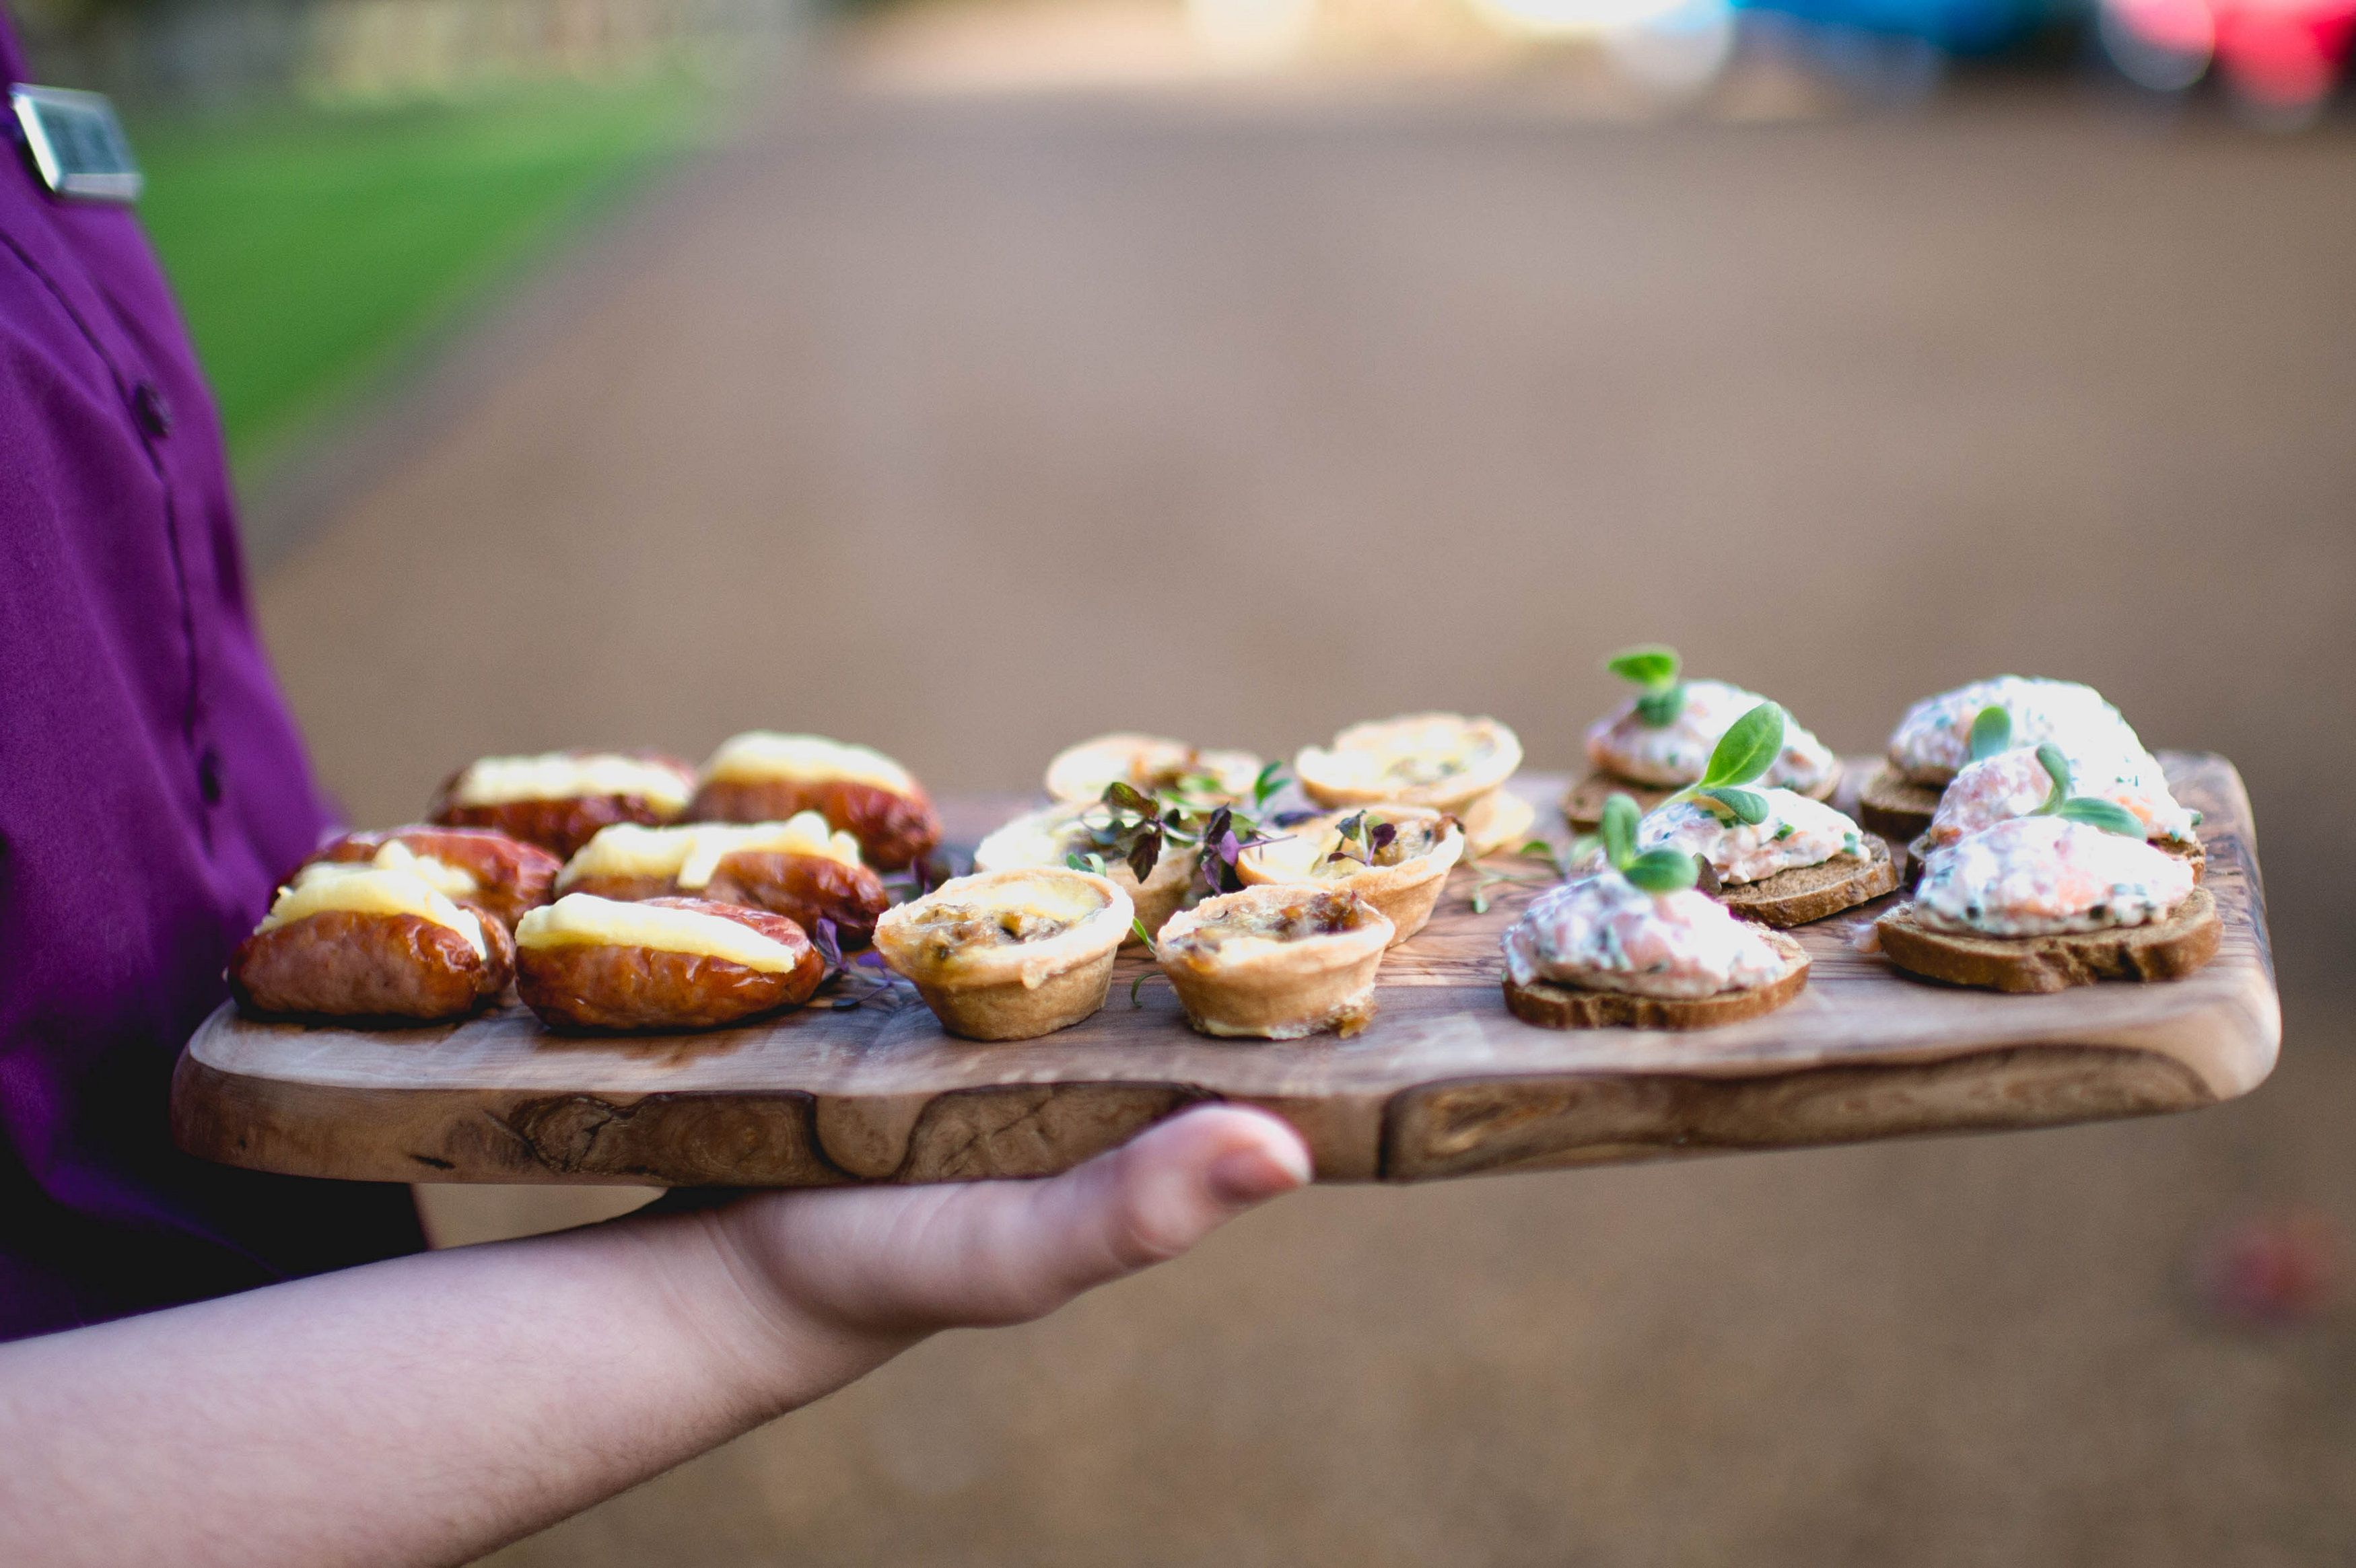 Canapes - We Have A Variety To Choose From